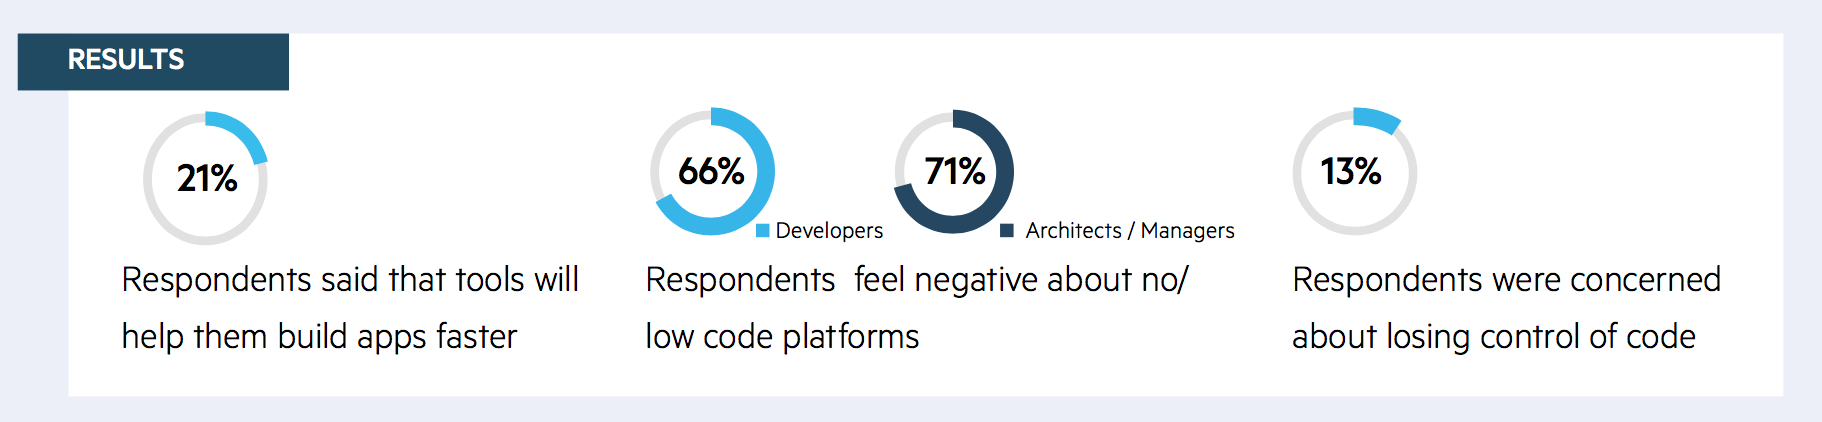 progress survey results